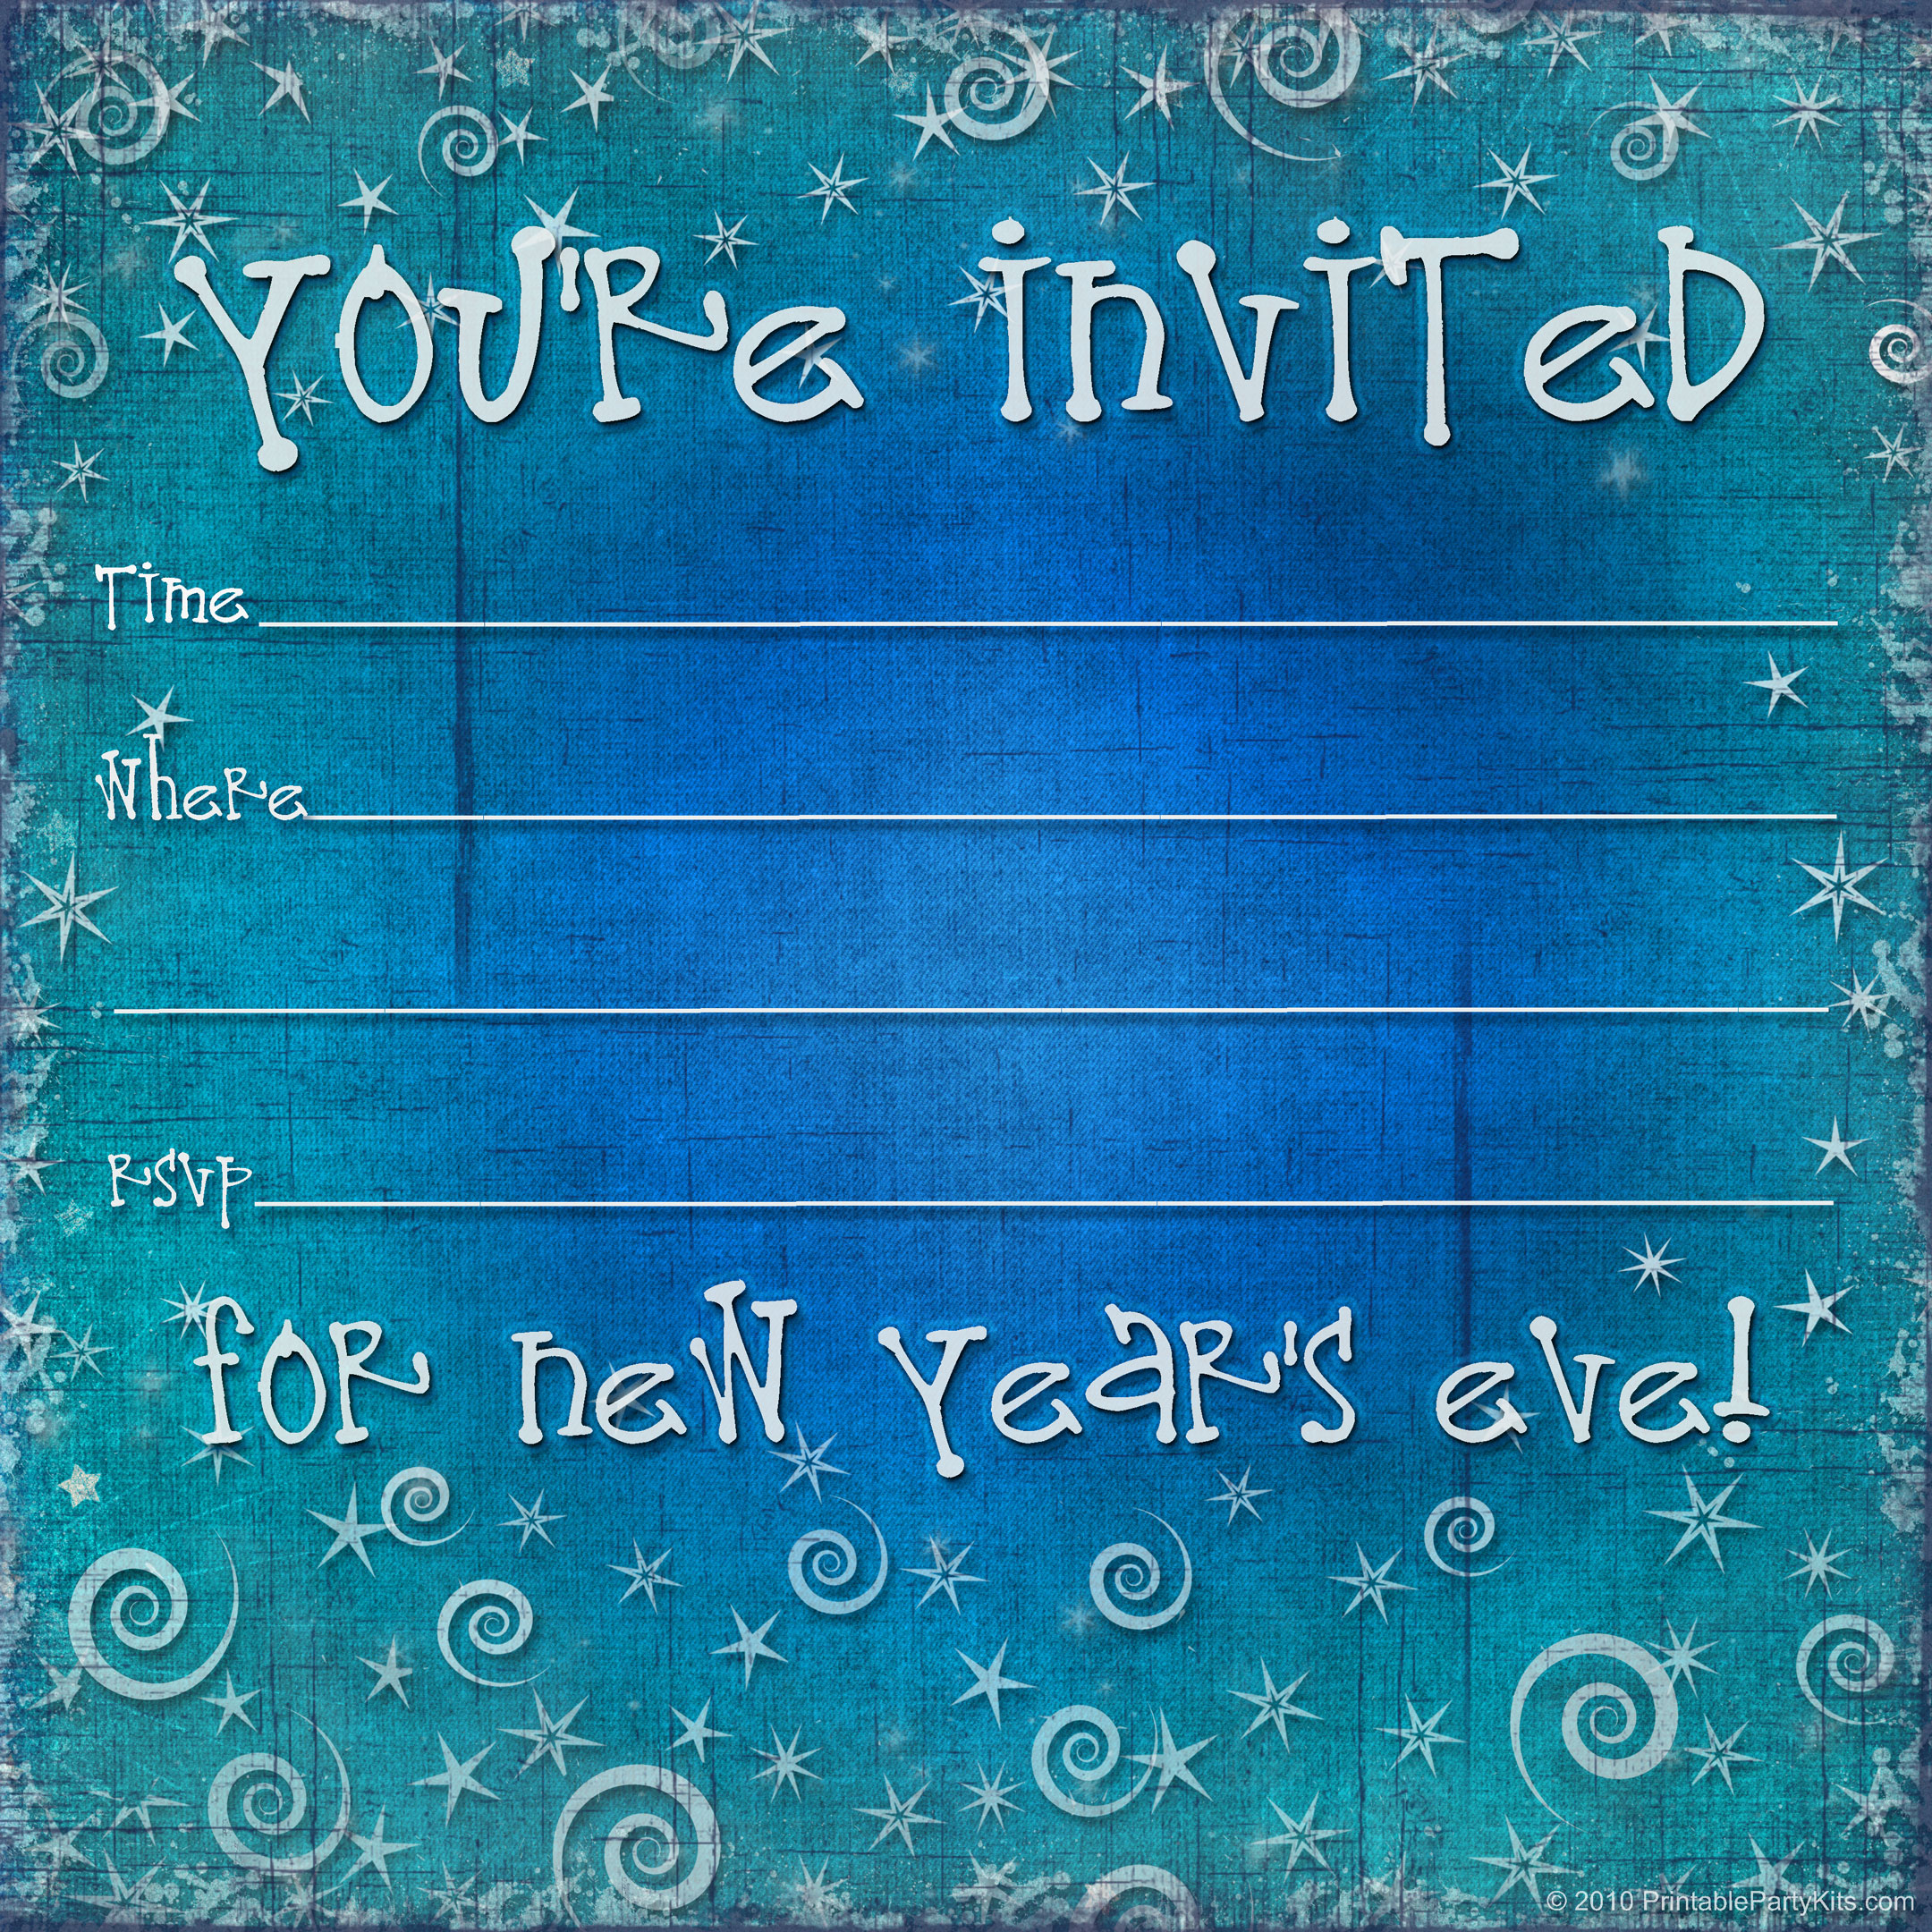 new years eve party invitation templates com printable new years eve party invitation template printable